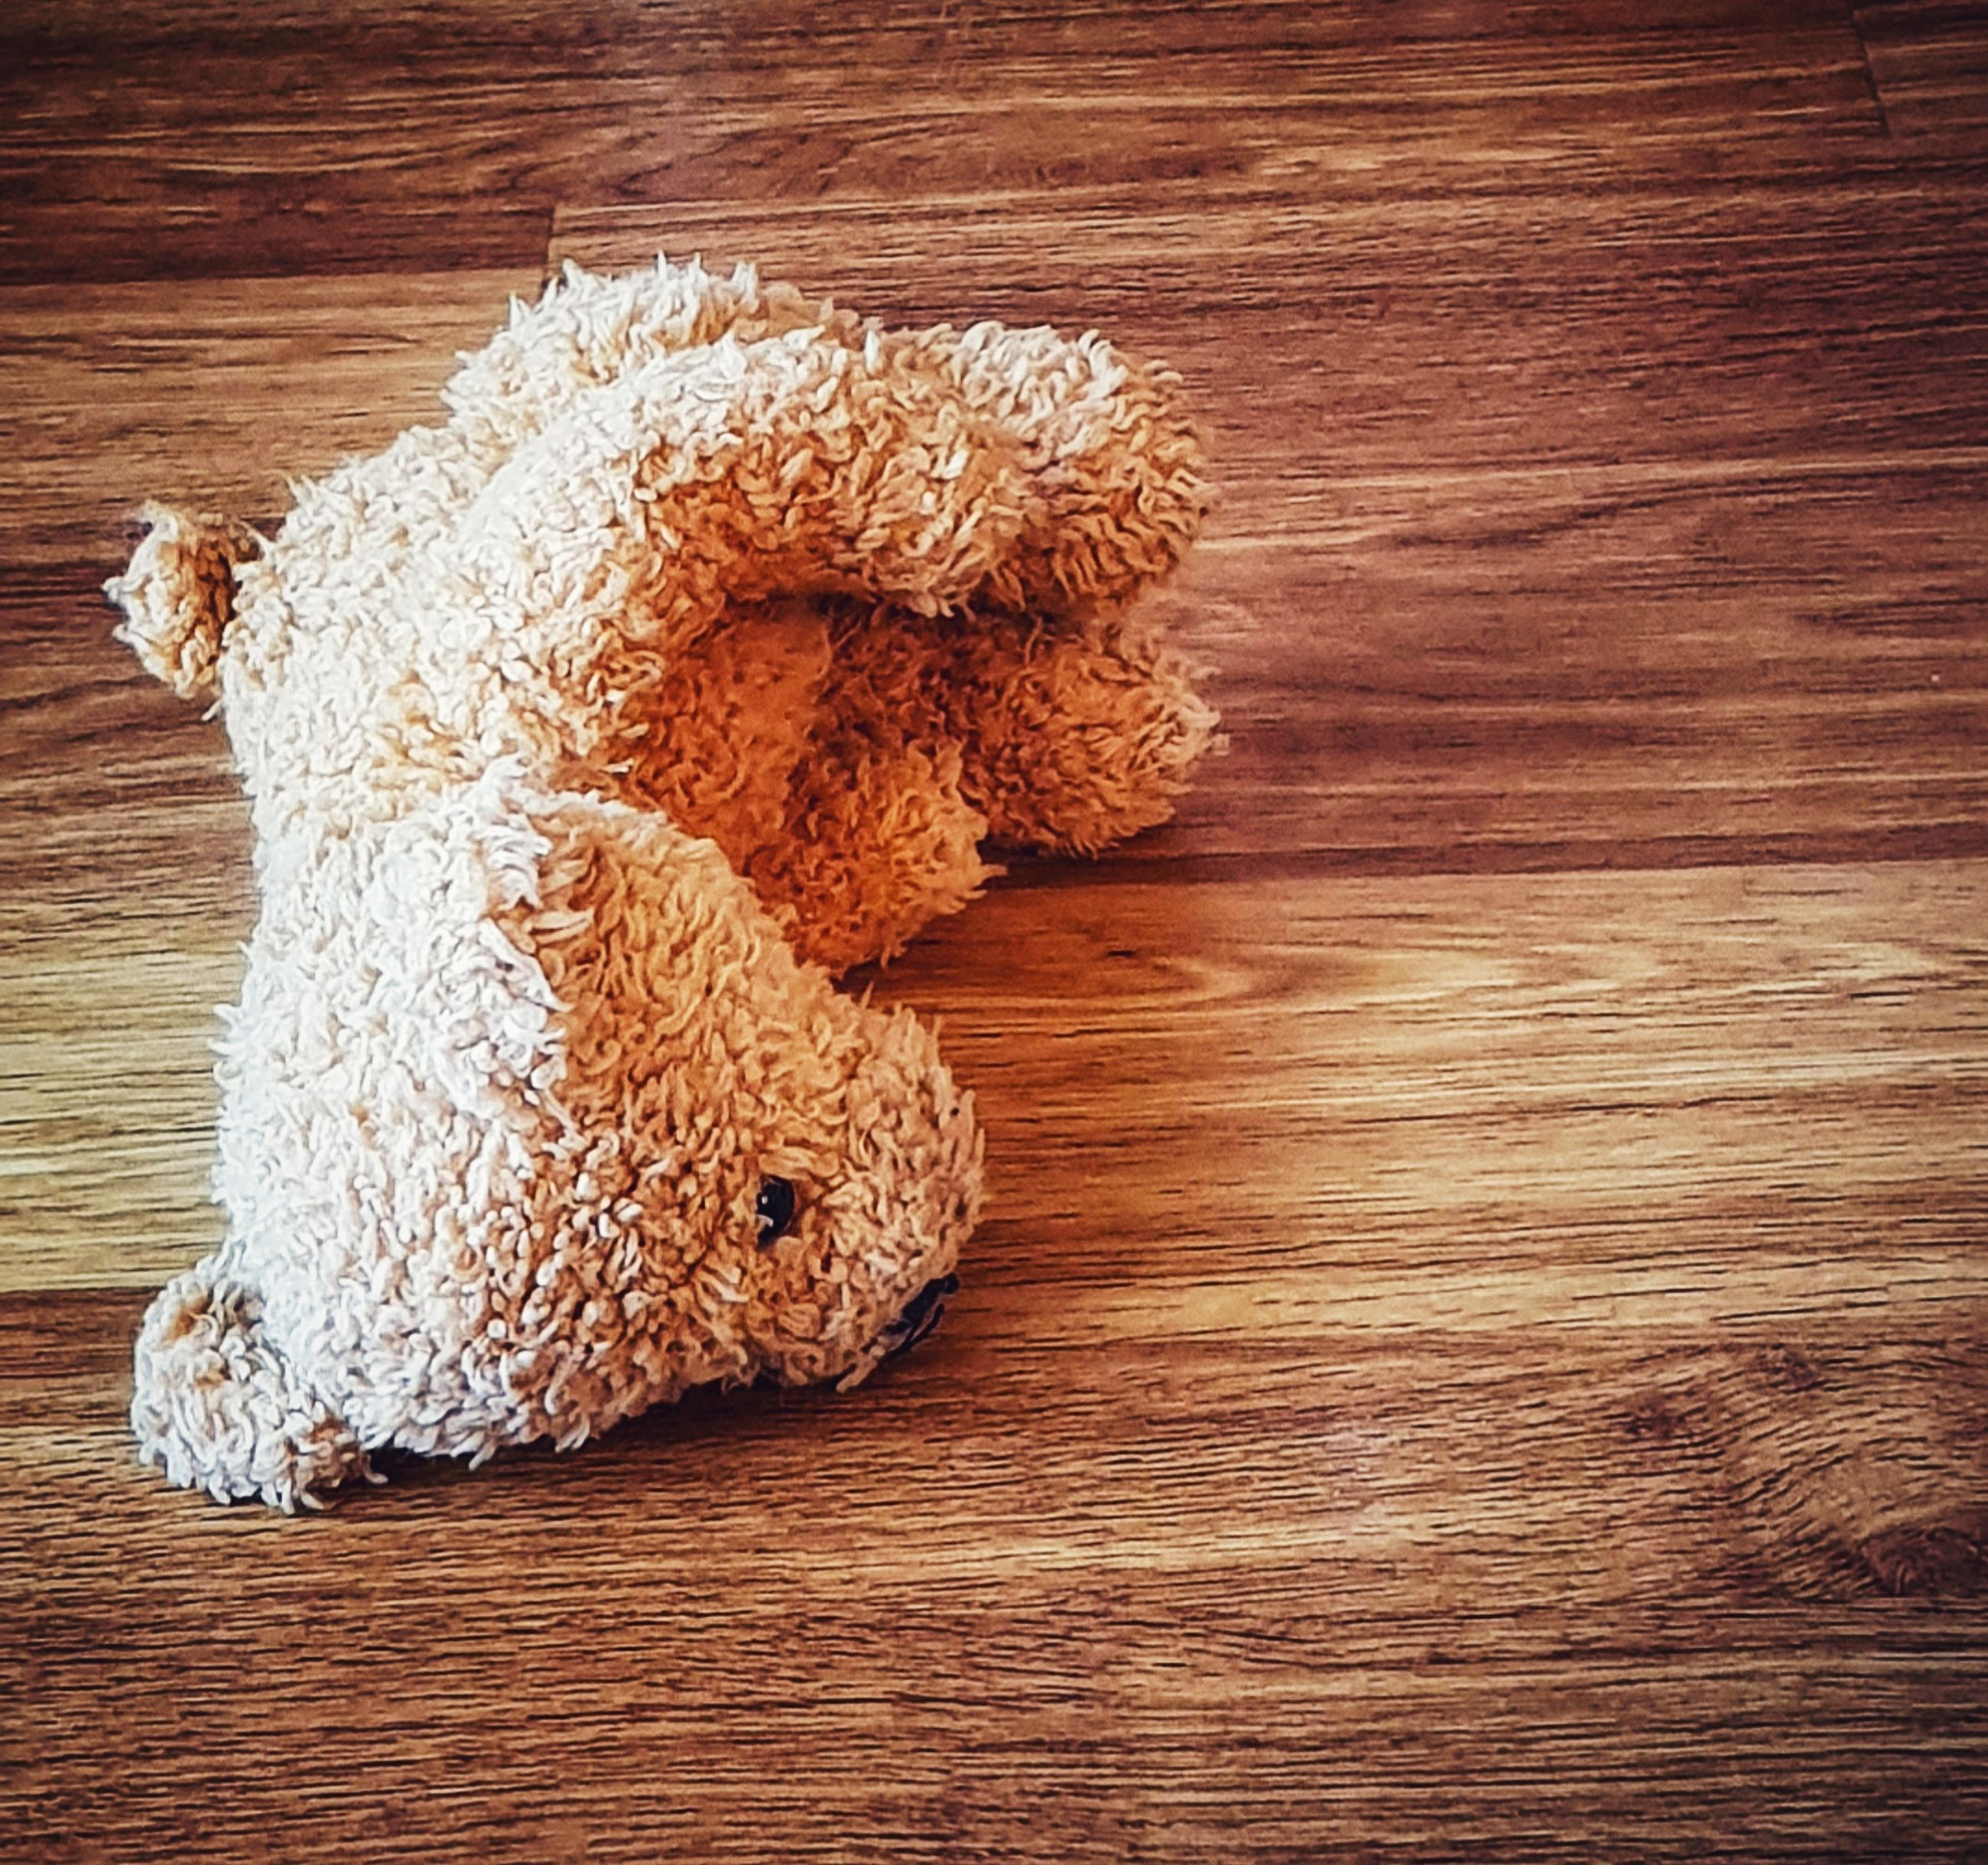 wood - material, indoors, stuffed toy, toy, brown, no people, still life, teddy bear, high angle view, table, wood, close-up, animal representation, flooring, hardwood floor, mammal, representation, directly above, baked, animal